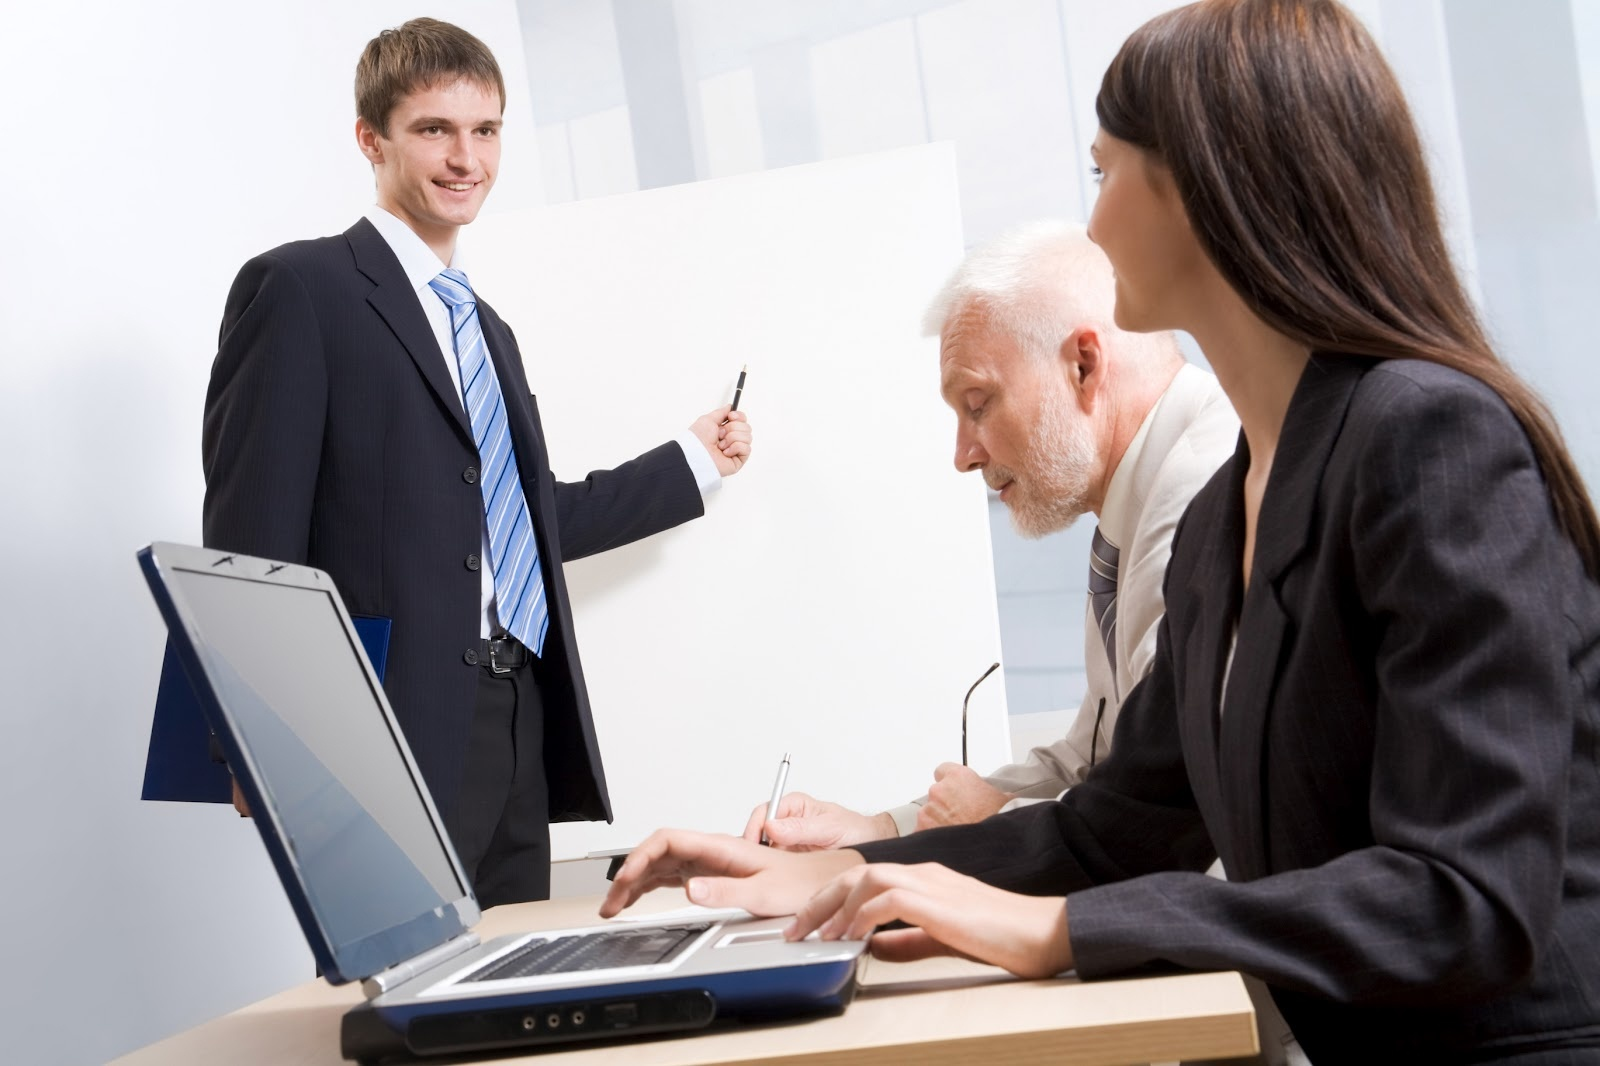 Effective Sales Coaching, Not Micromanaging